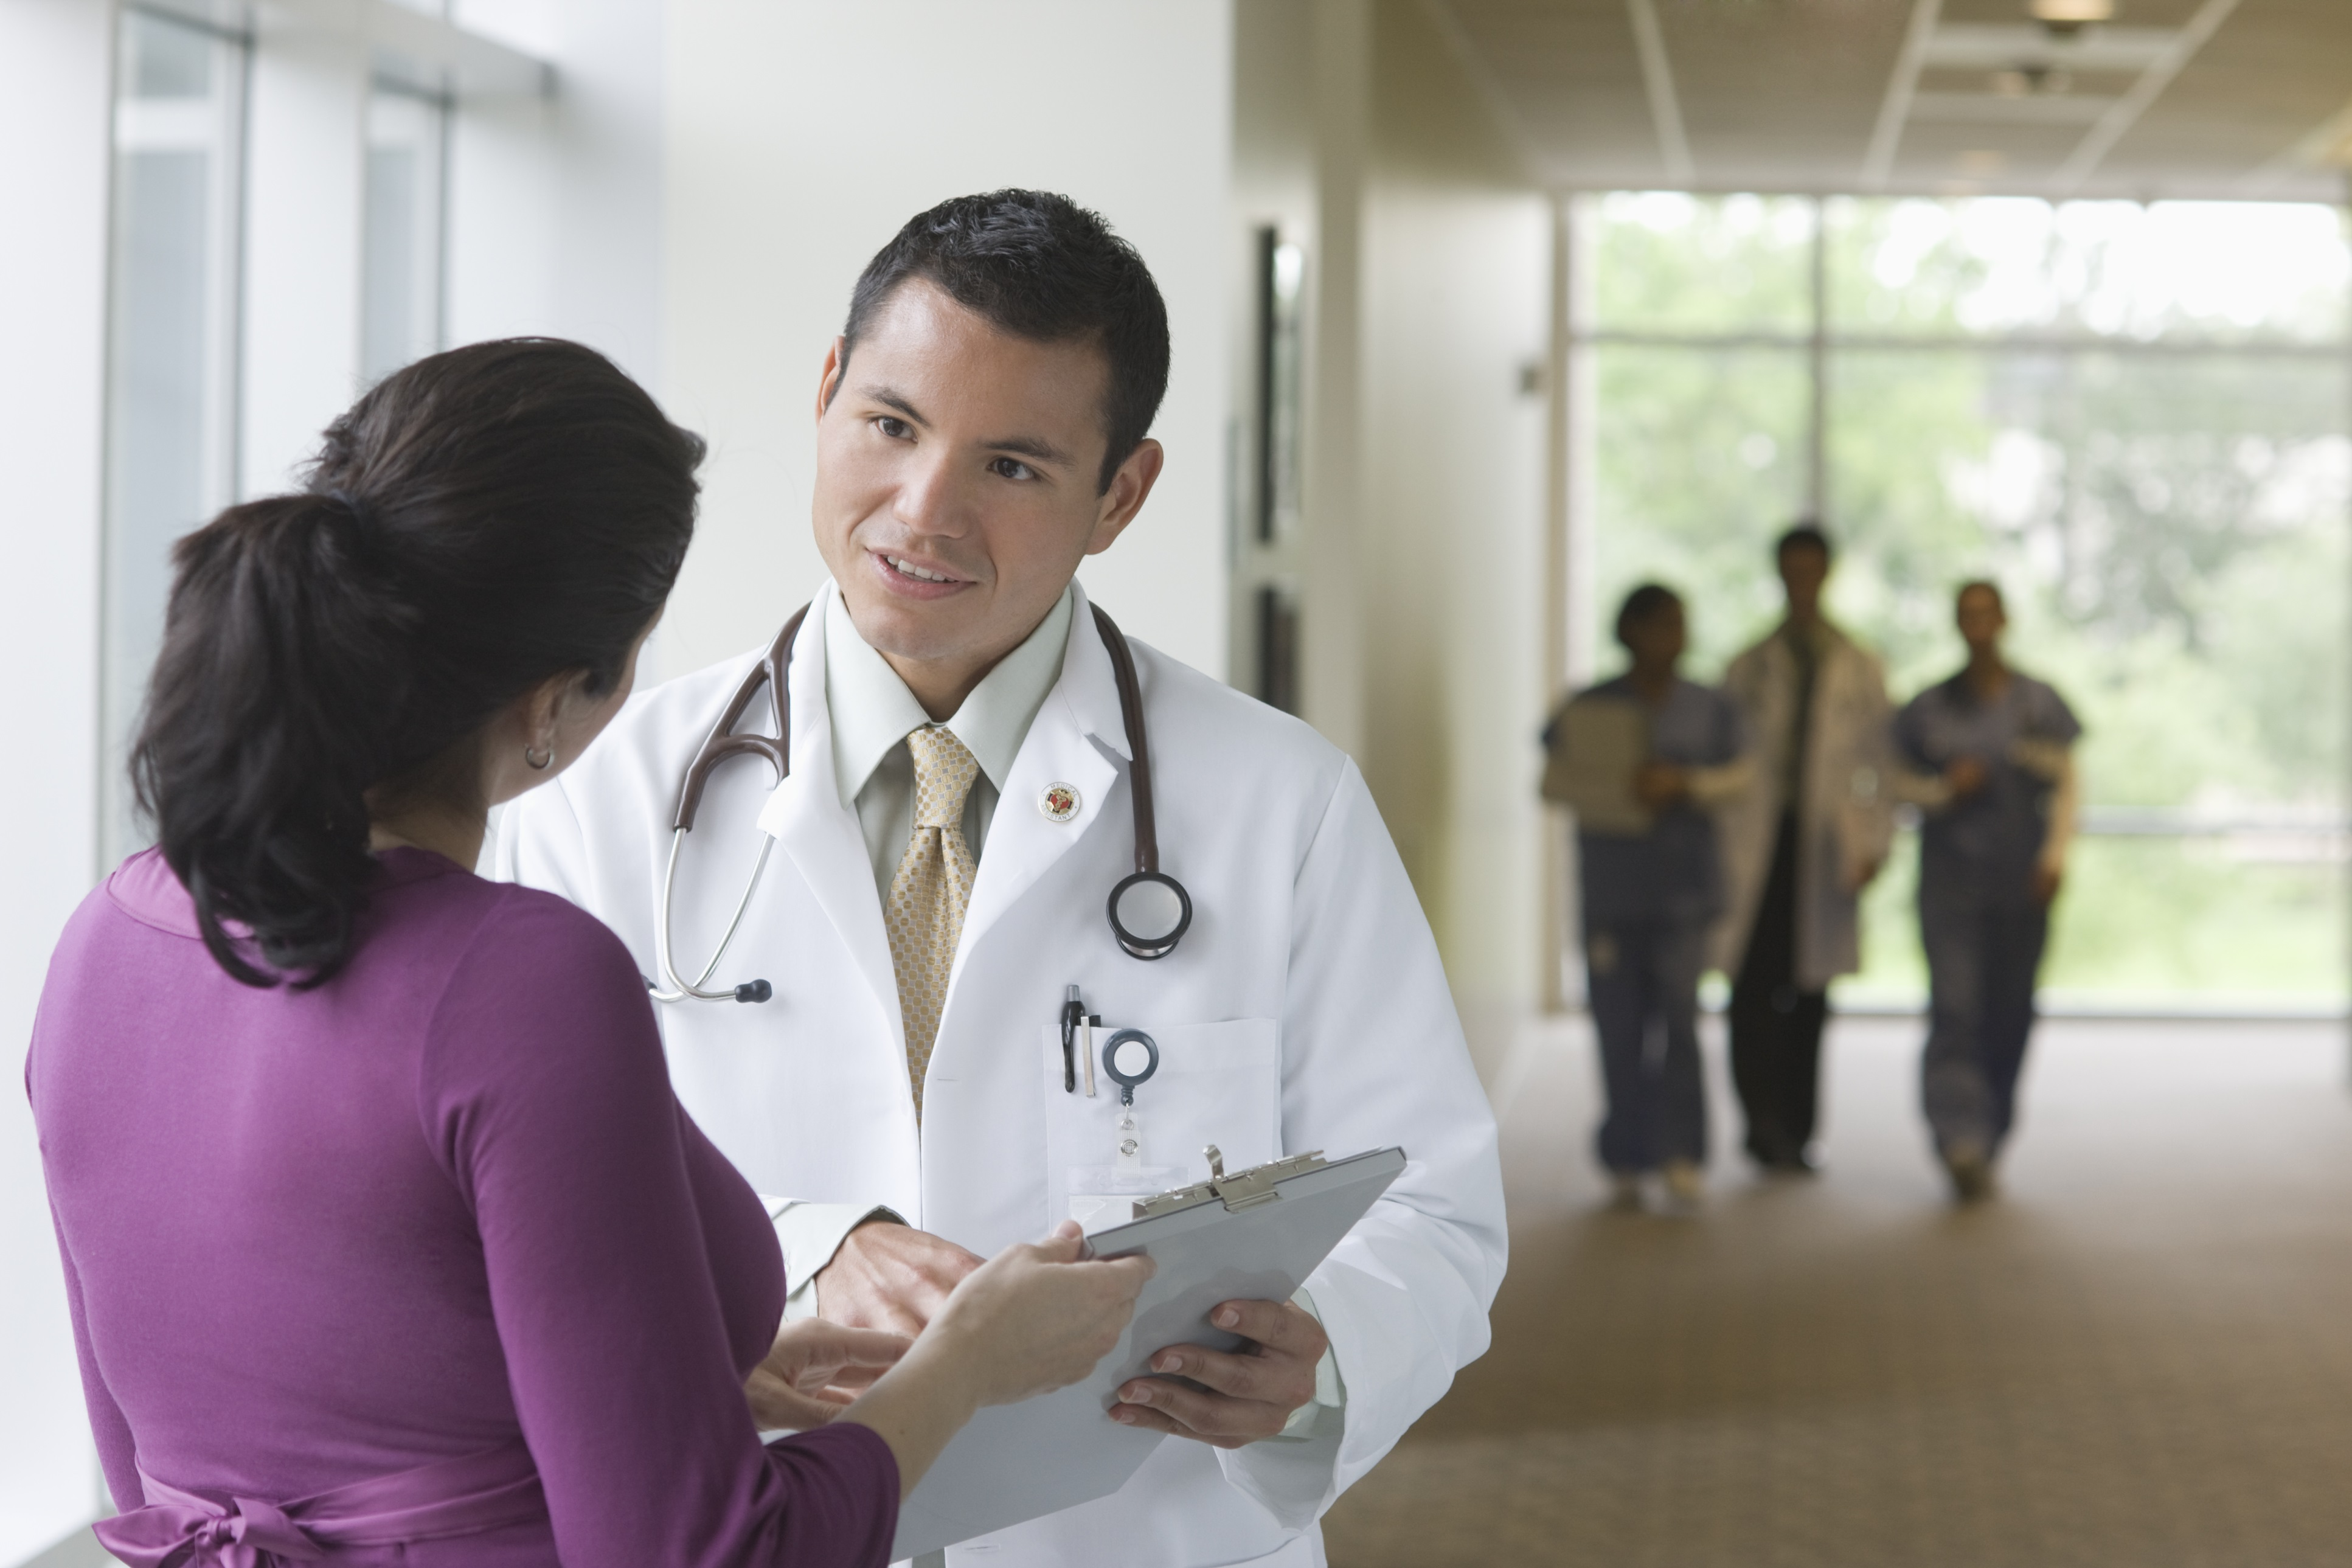 Pre-med, med students, Doctors: How should I go about completing my science courses?